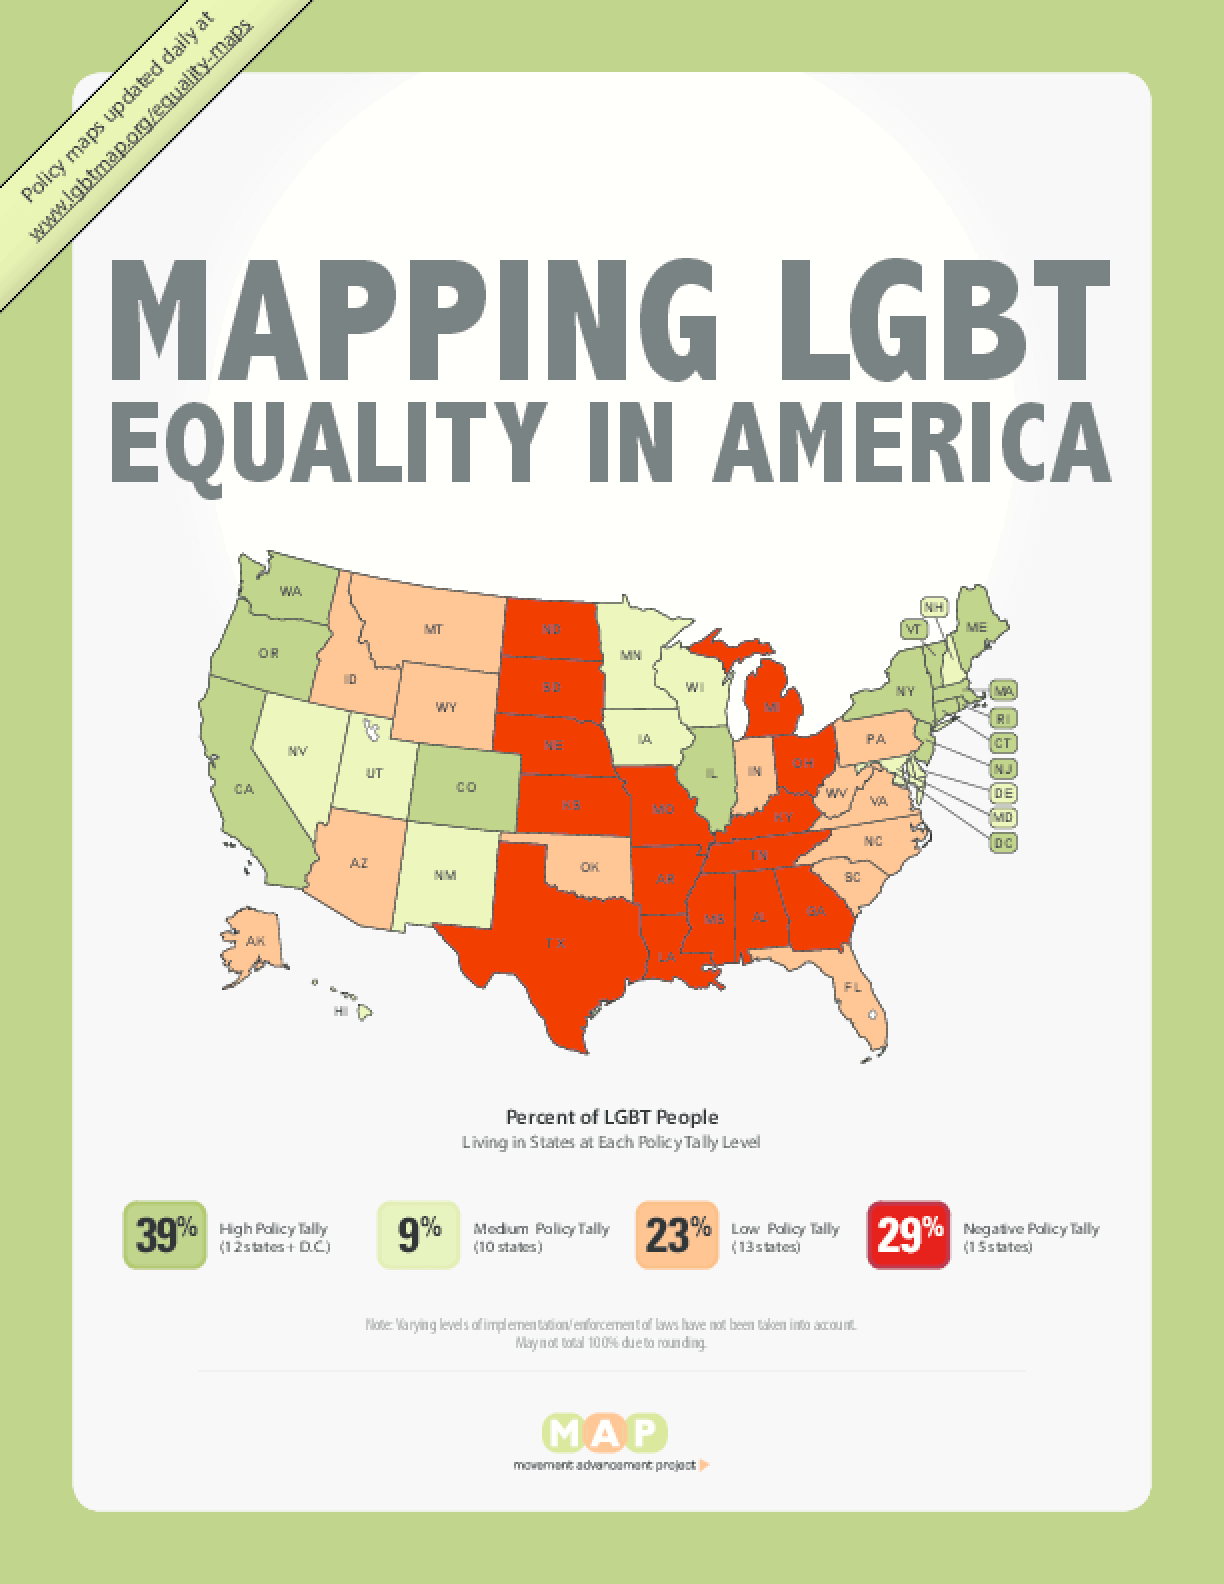 Mapping LGBT Equality In America